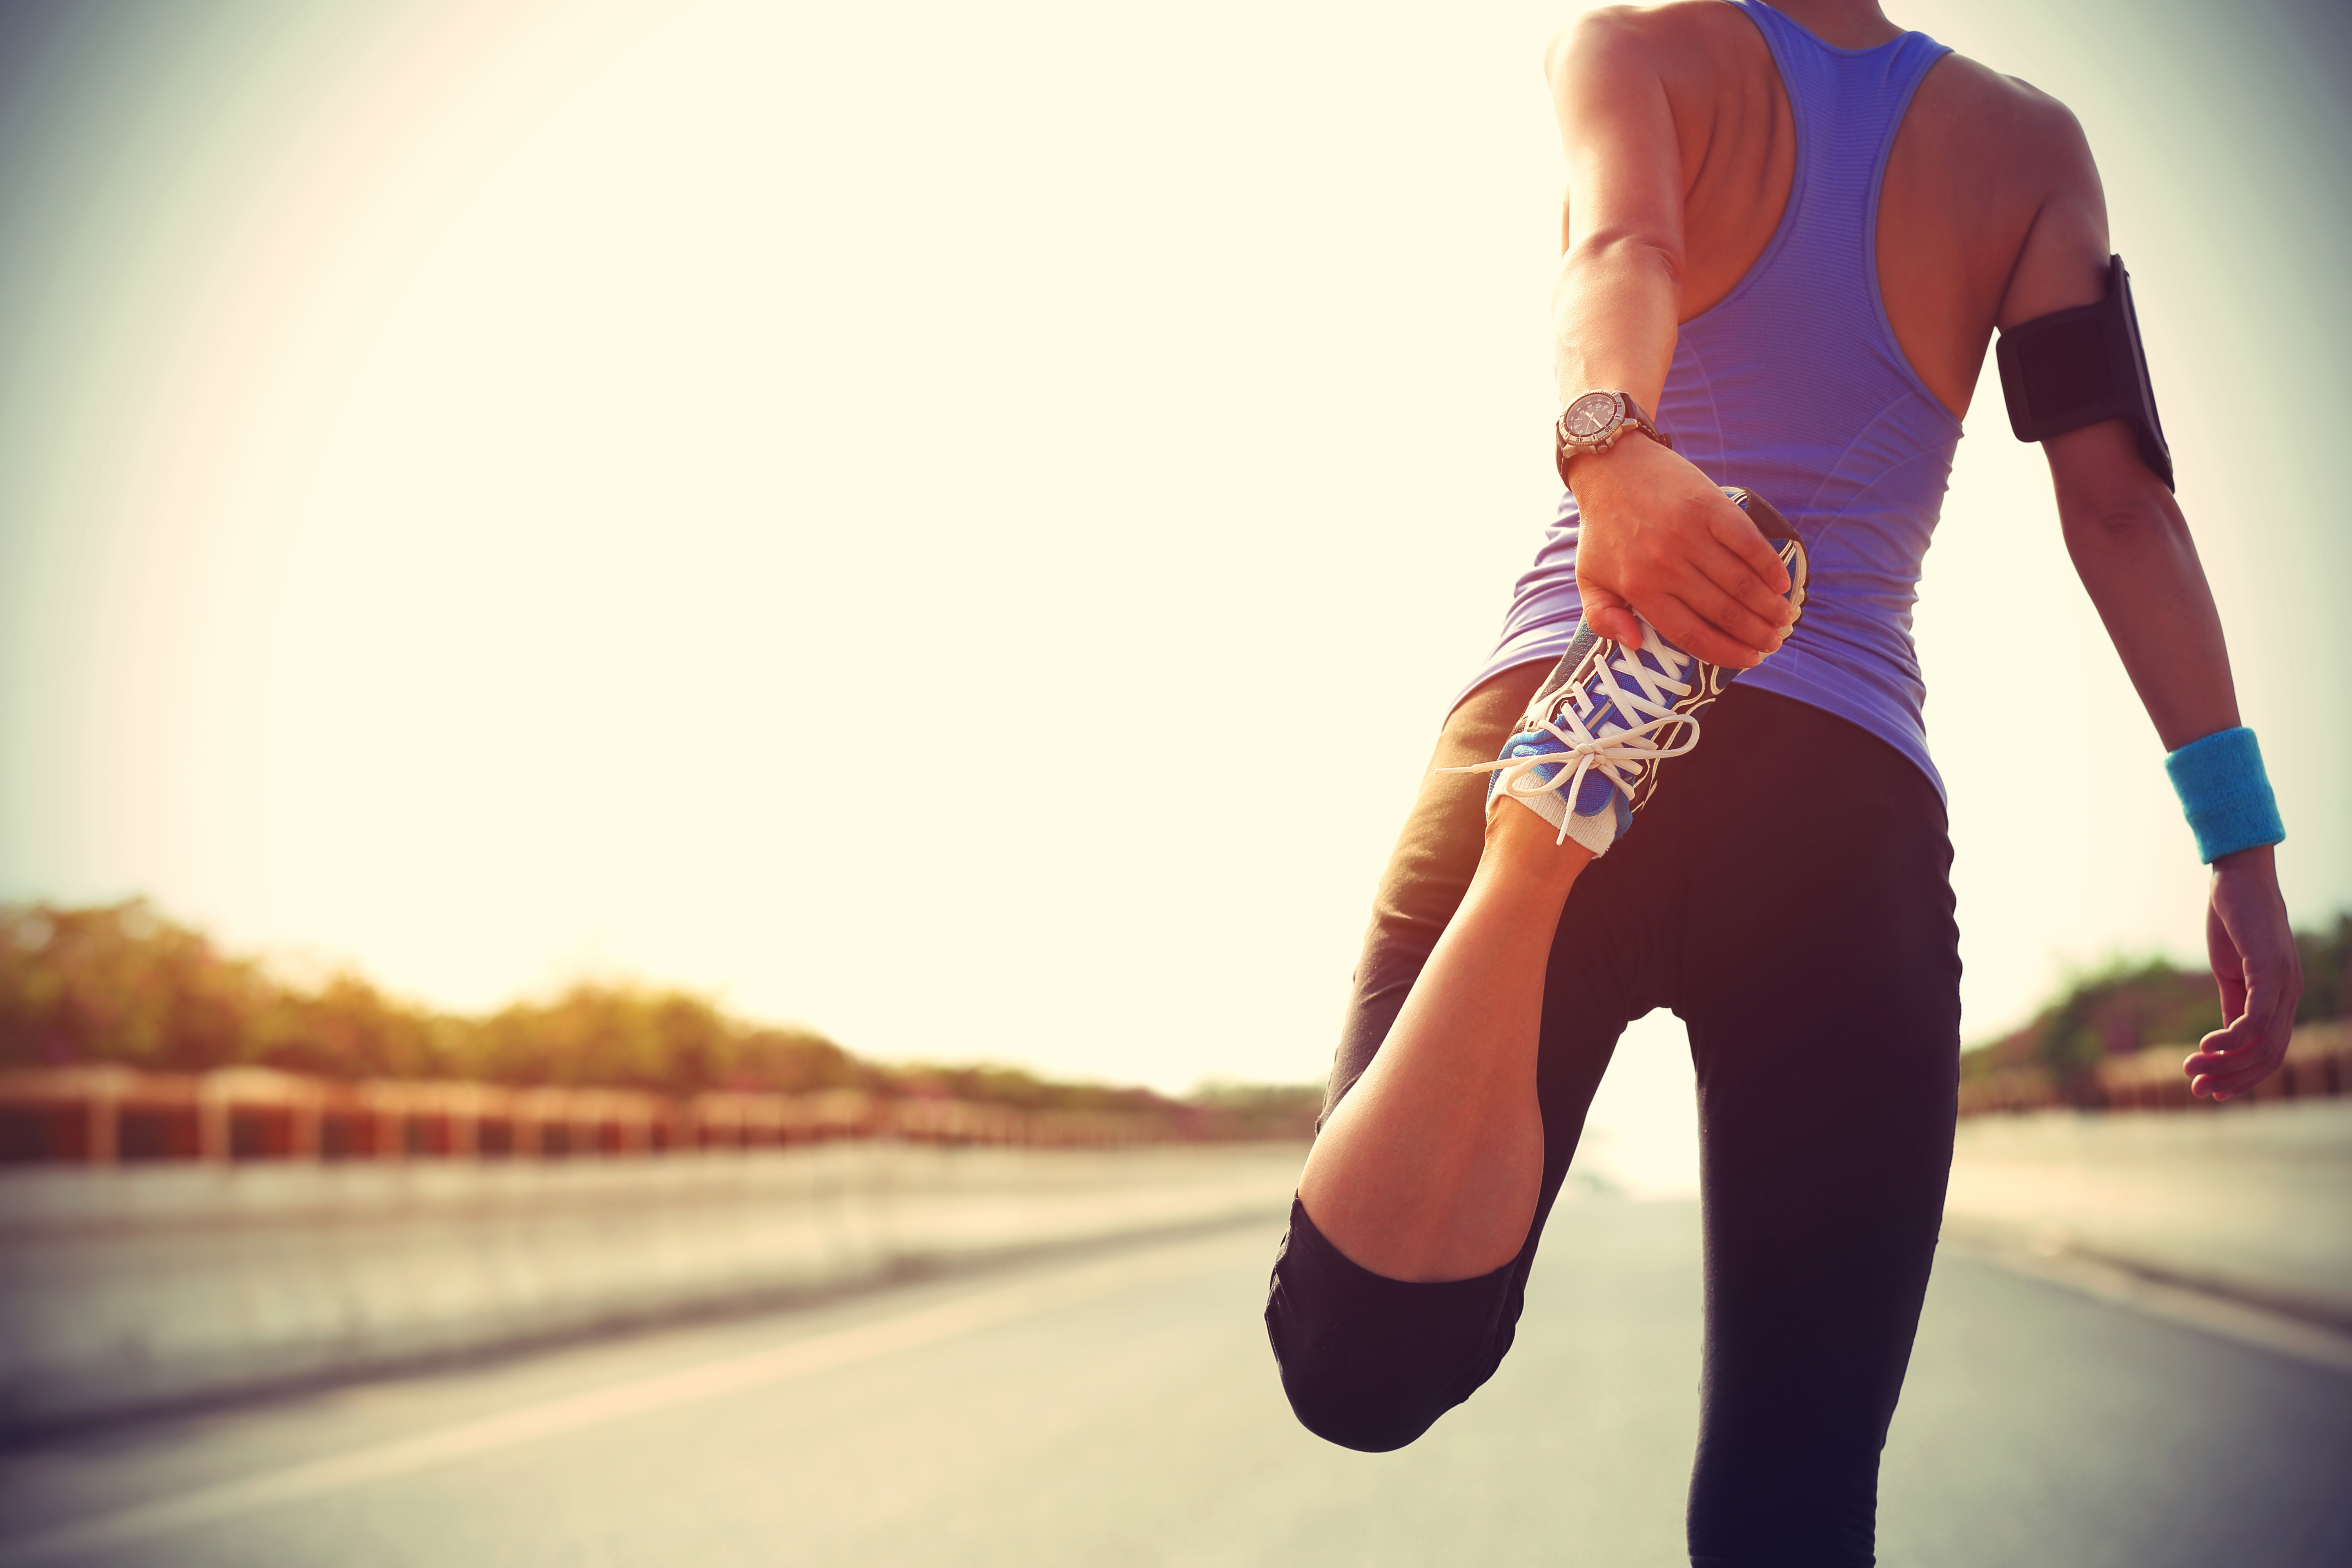 stretch exercises for post delivery weight loss